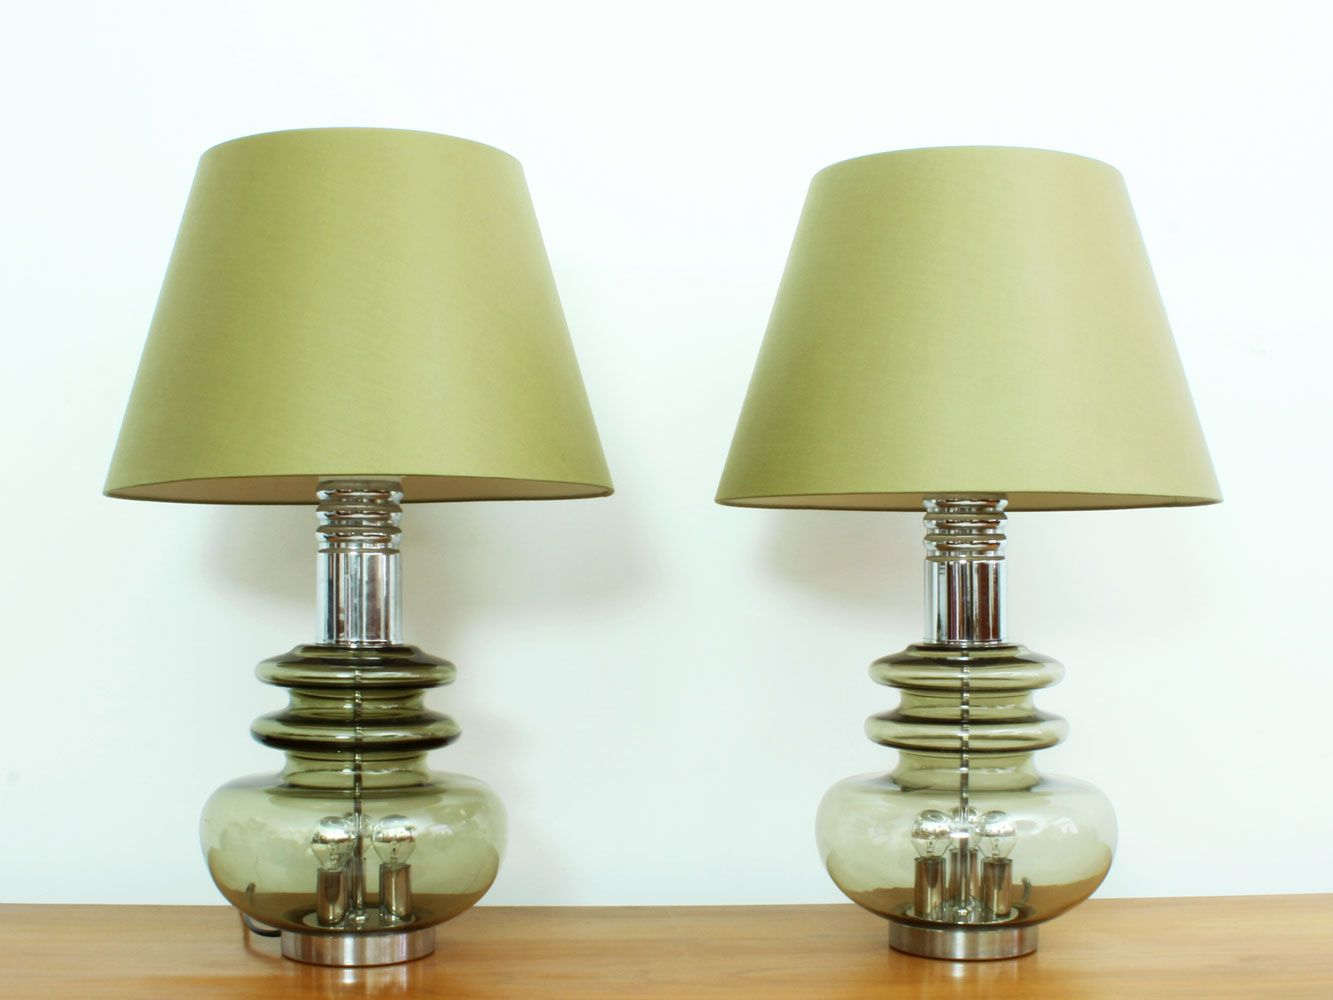 German glass chrome table lamps from doria leuchten 1960s set of german glass chrome table lamps from doria leuchten 1960s set of 2 aloadofball Gallery